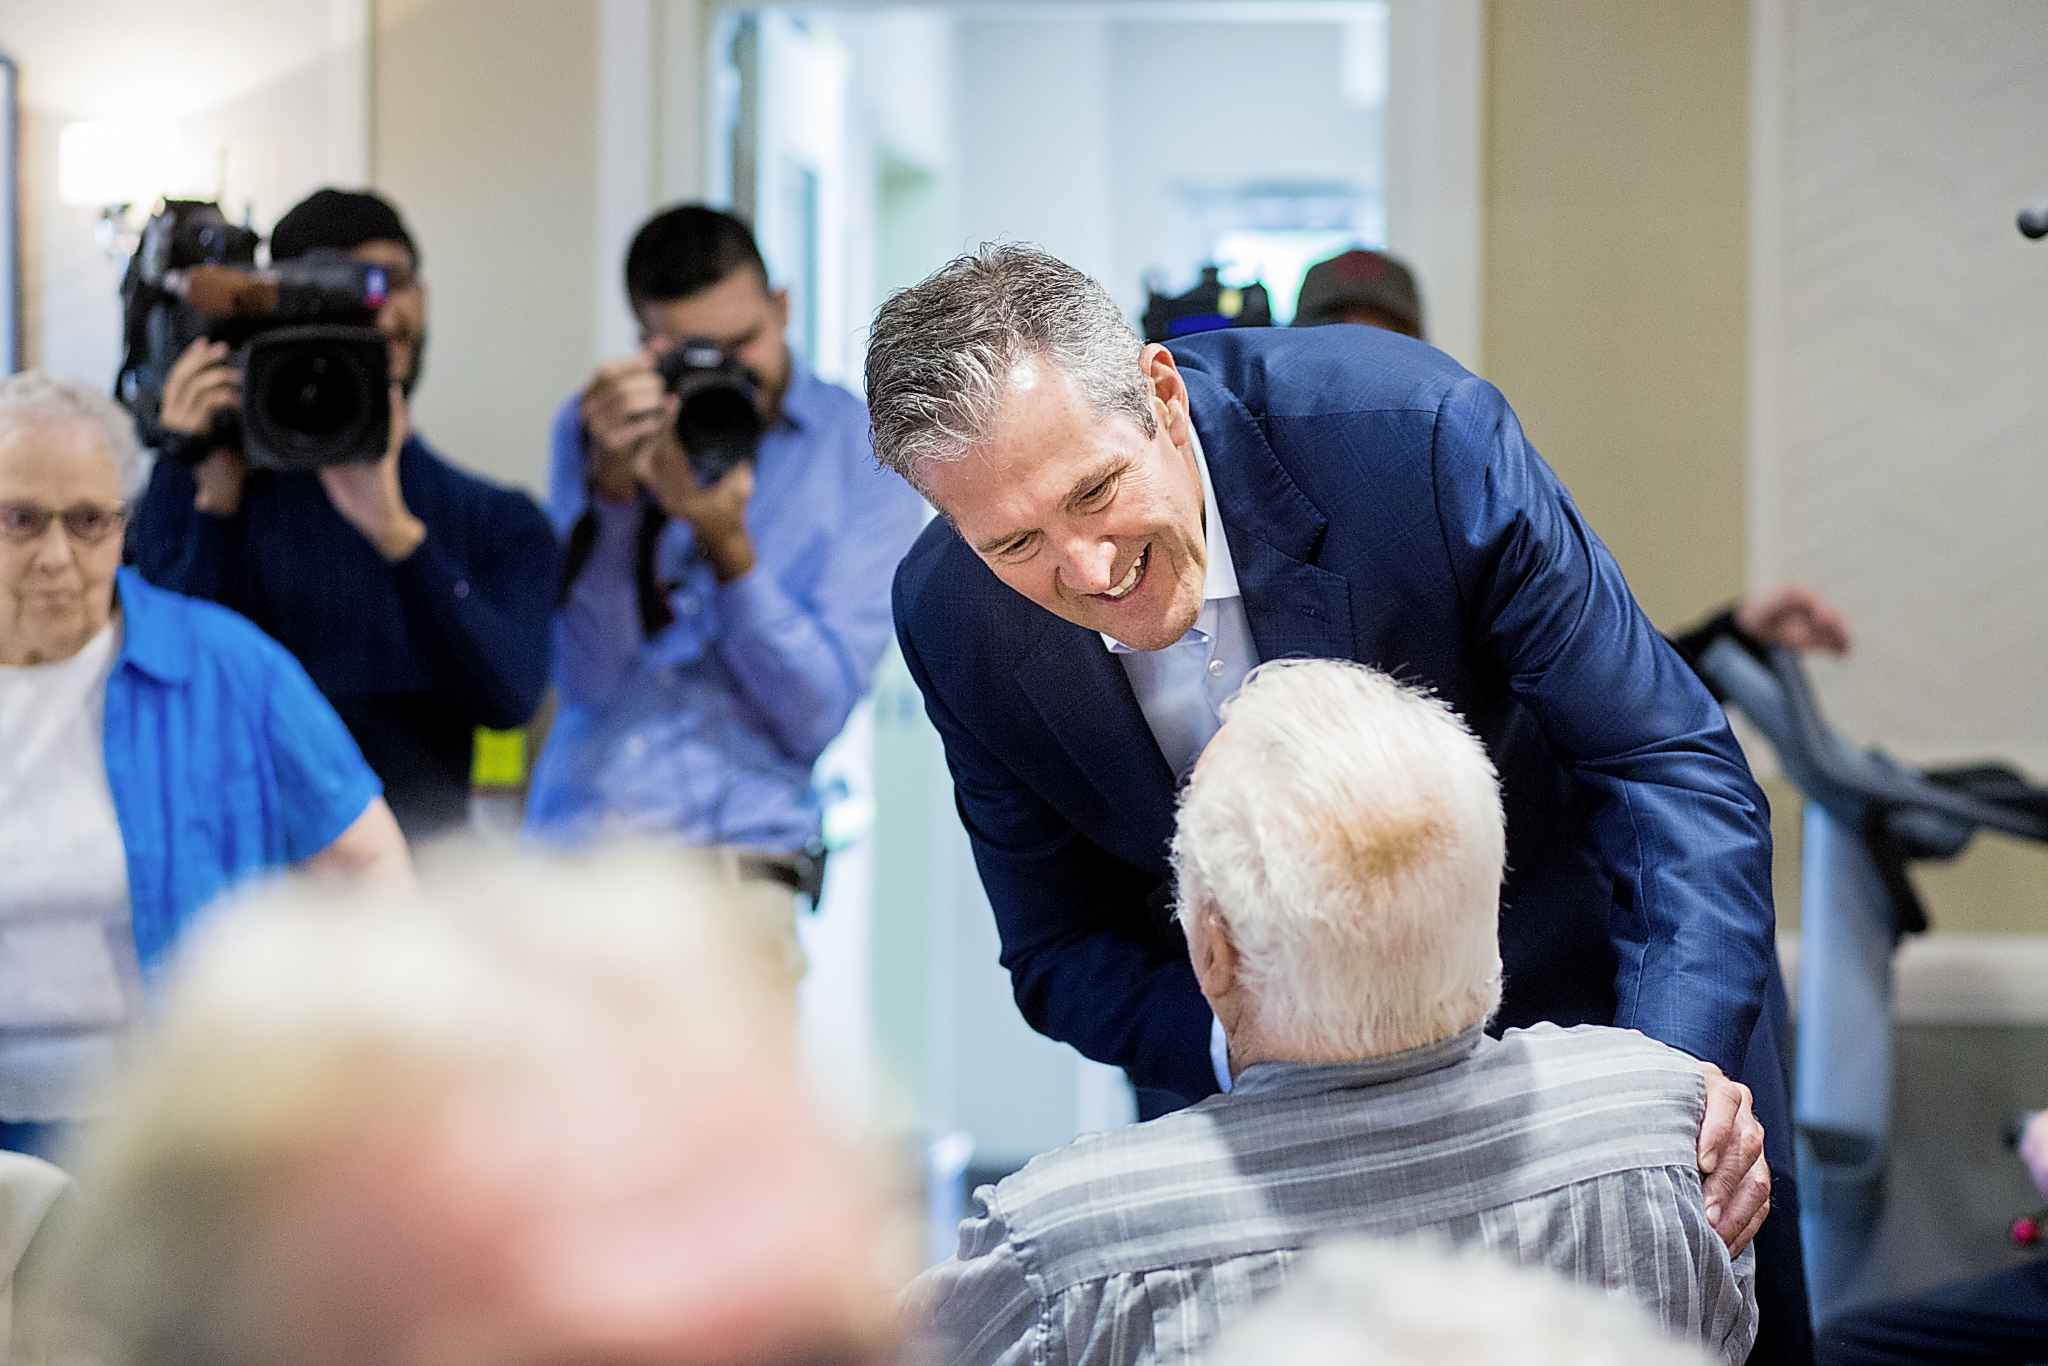 <p>MIKAELA MACKENZIE / WINNIPEG FREE PRESS </p> Progressive Conservative Leader Brian Pallister has a low approval rating yet is likely to lead his party to victory, a new poll says.